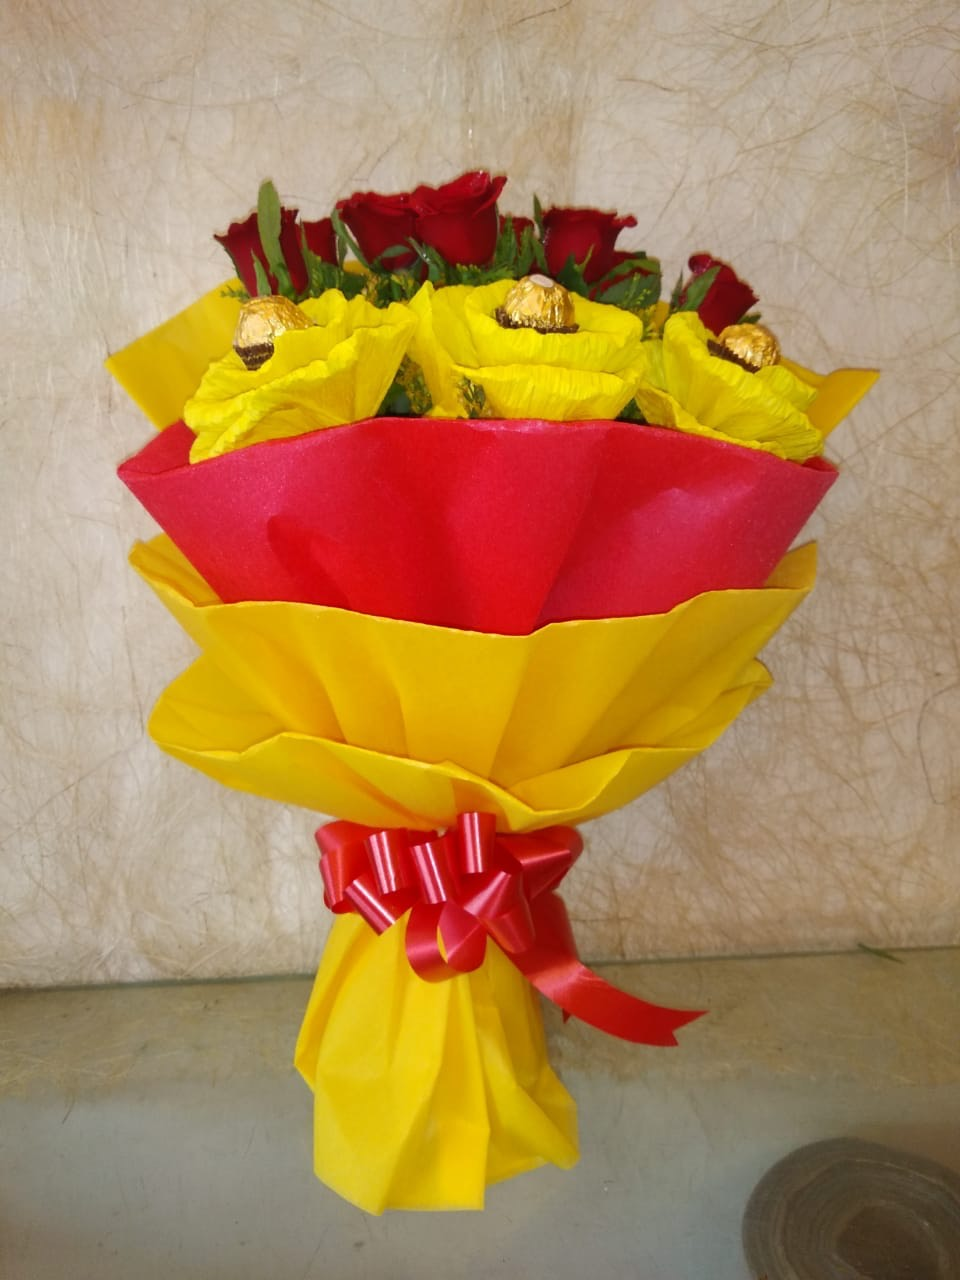 Flowers Delivery in Univeral Garden 2 GurgaonRed Roses Ferrero Rocher Bunch